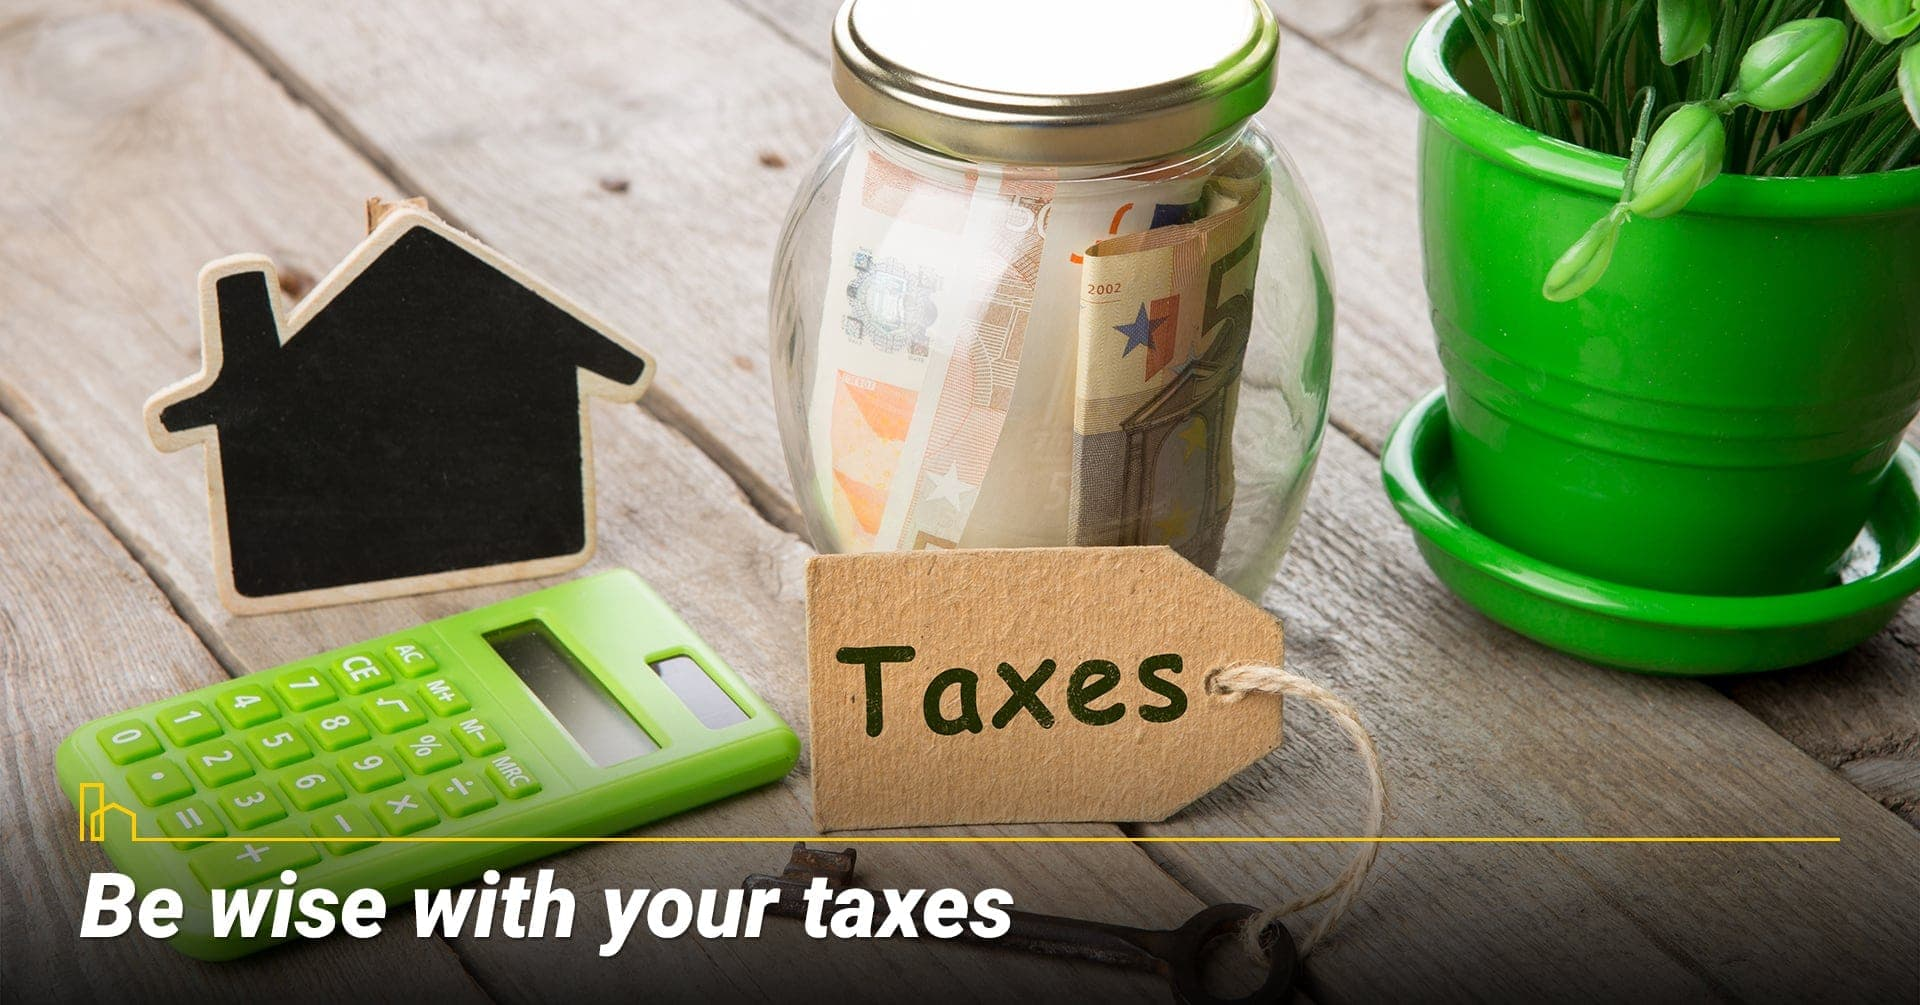 Be wise with your taxes, use tax advisor